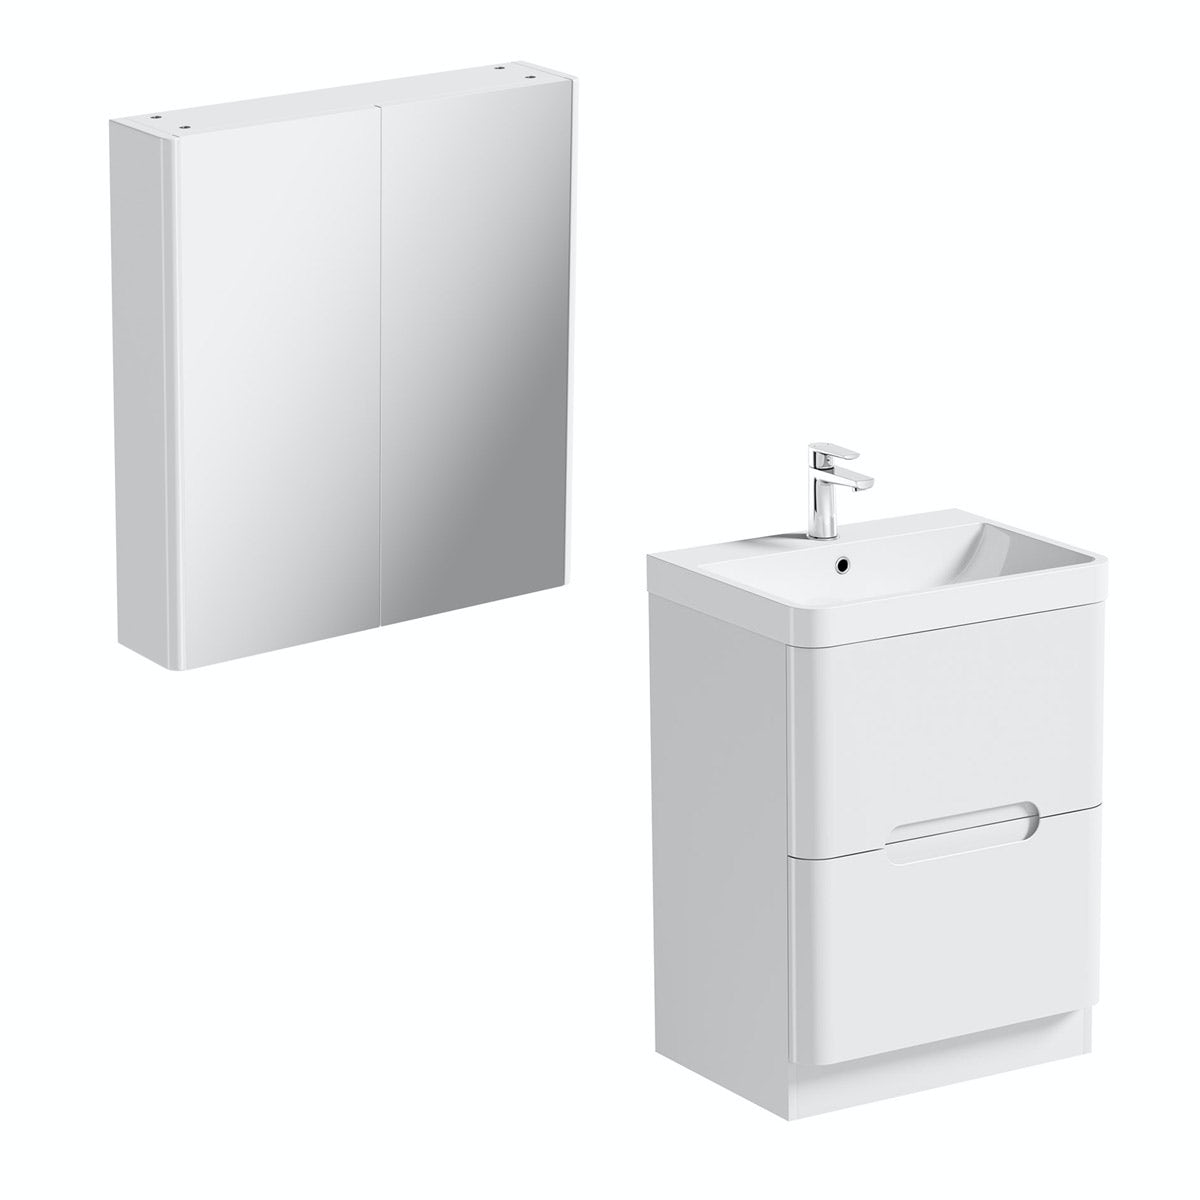 Mode Ellis white vanity drawer unit 600mm and mirror cabinet offer